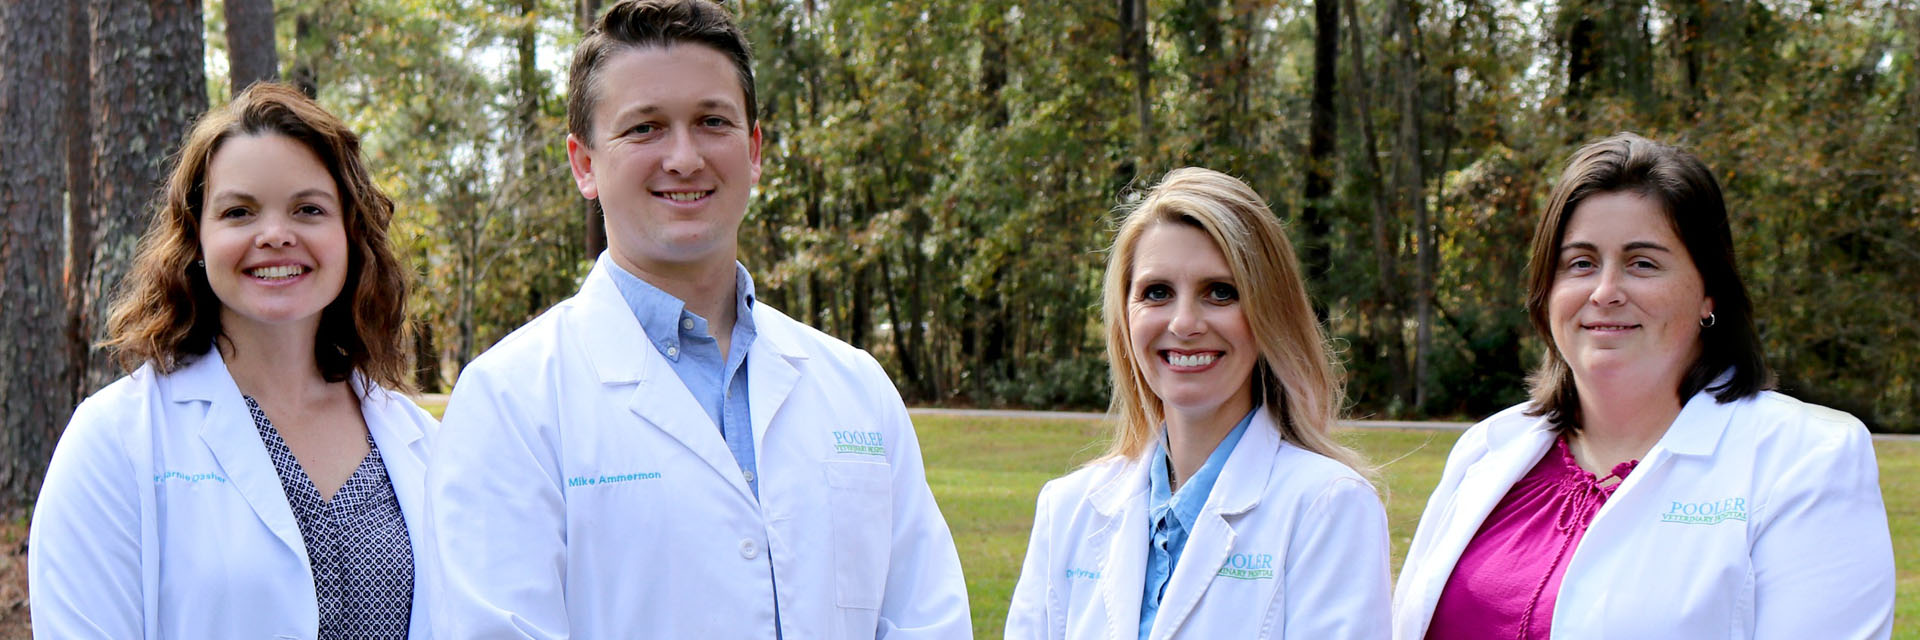 Pooler Veterinary Hospital Staff Veterinarians